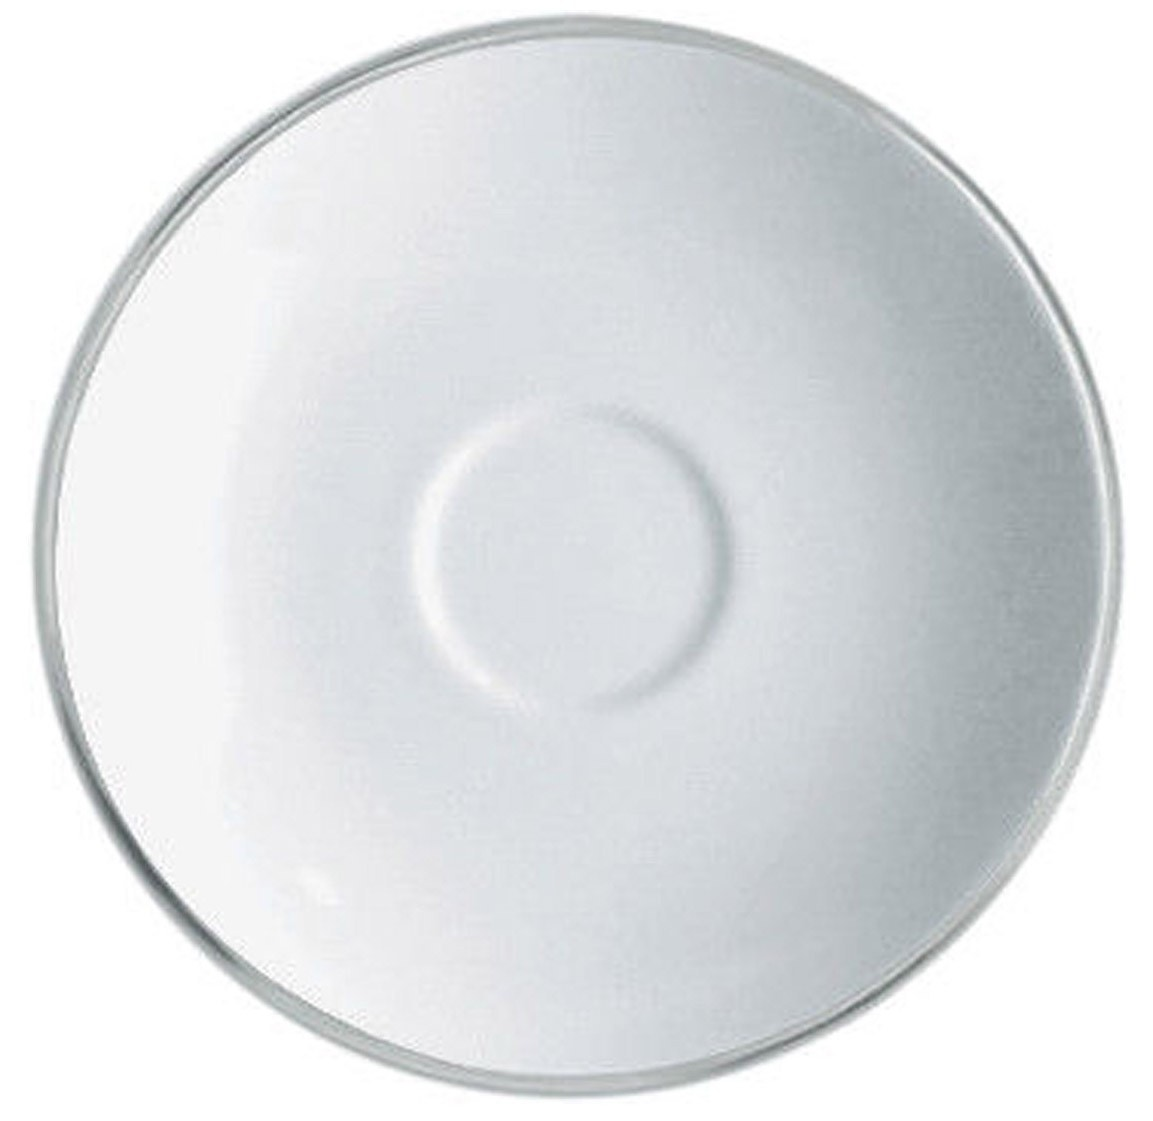 Alessi Mami Saucer For Coffee Cup SG53/88 (Priced Each, Sold in Sets of 6)